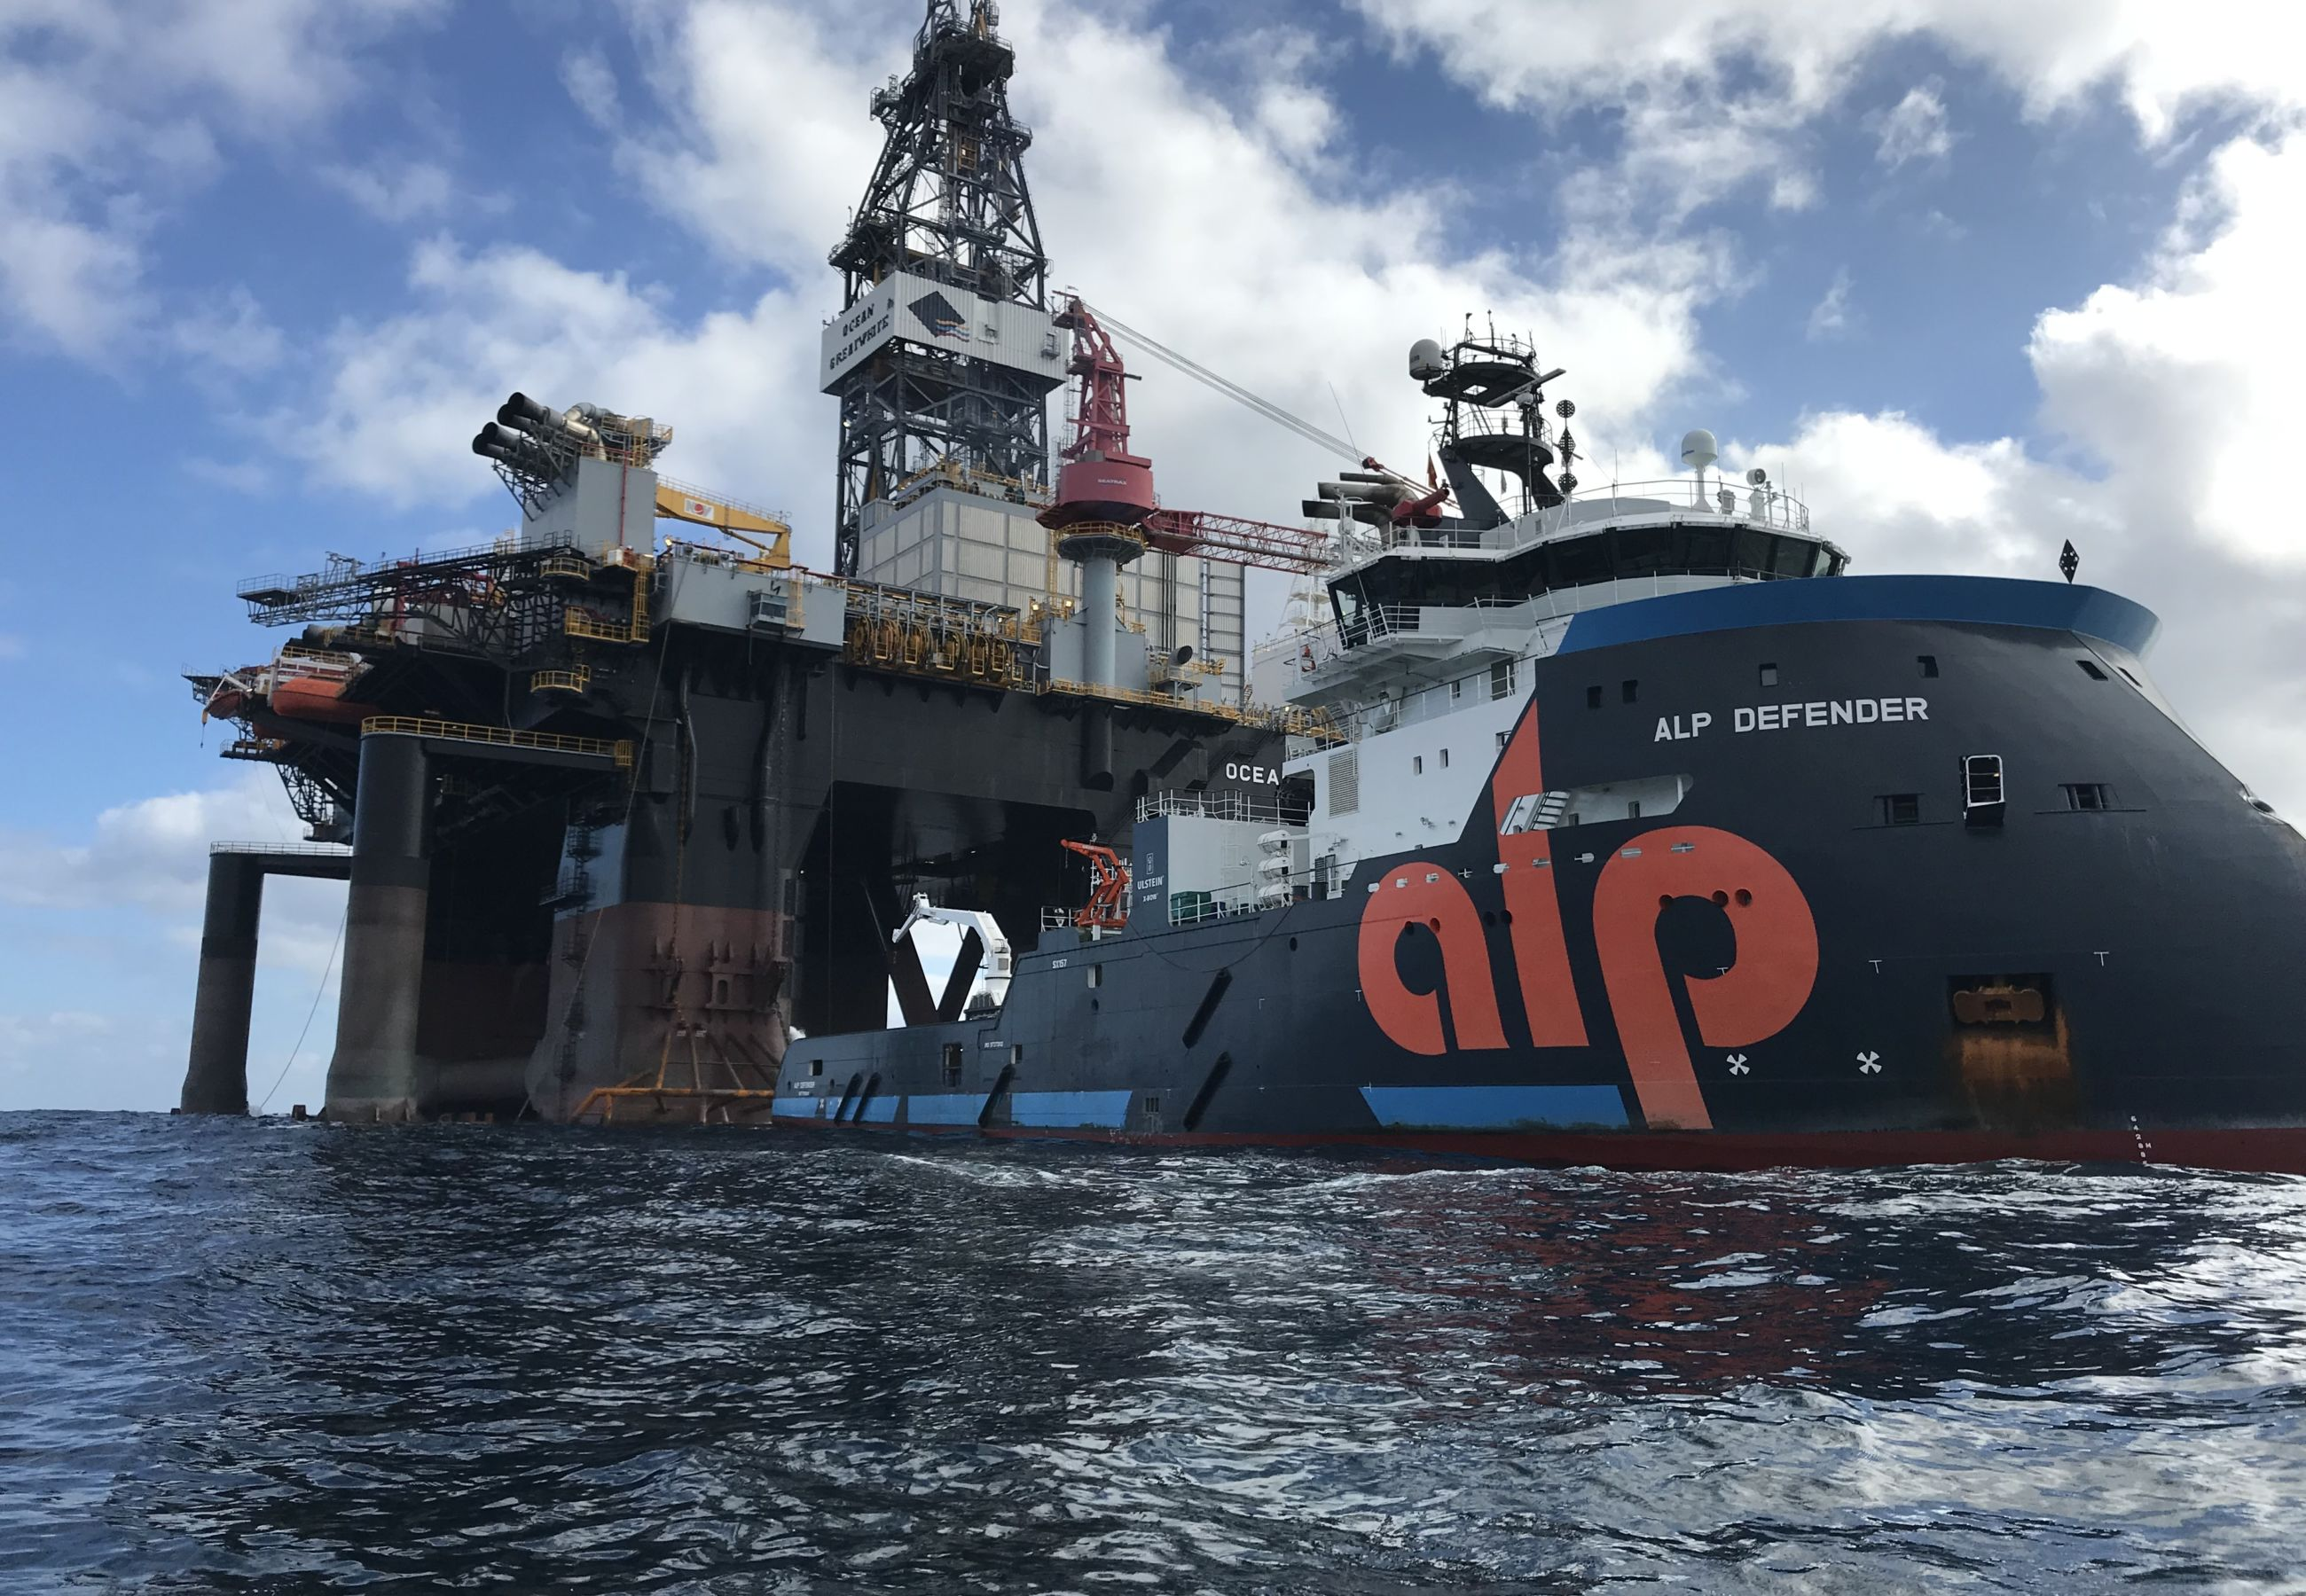 Alp Defender Ocean Great White Diamond Largest Rig 3